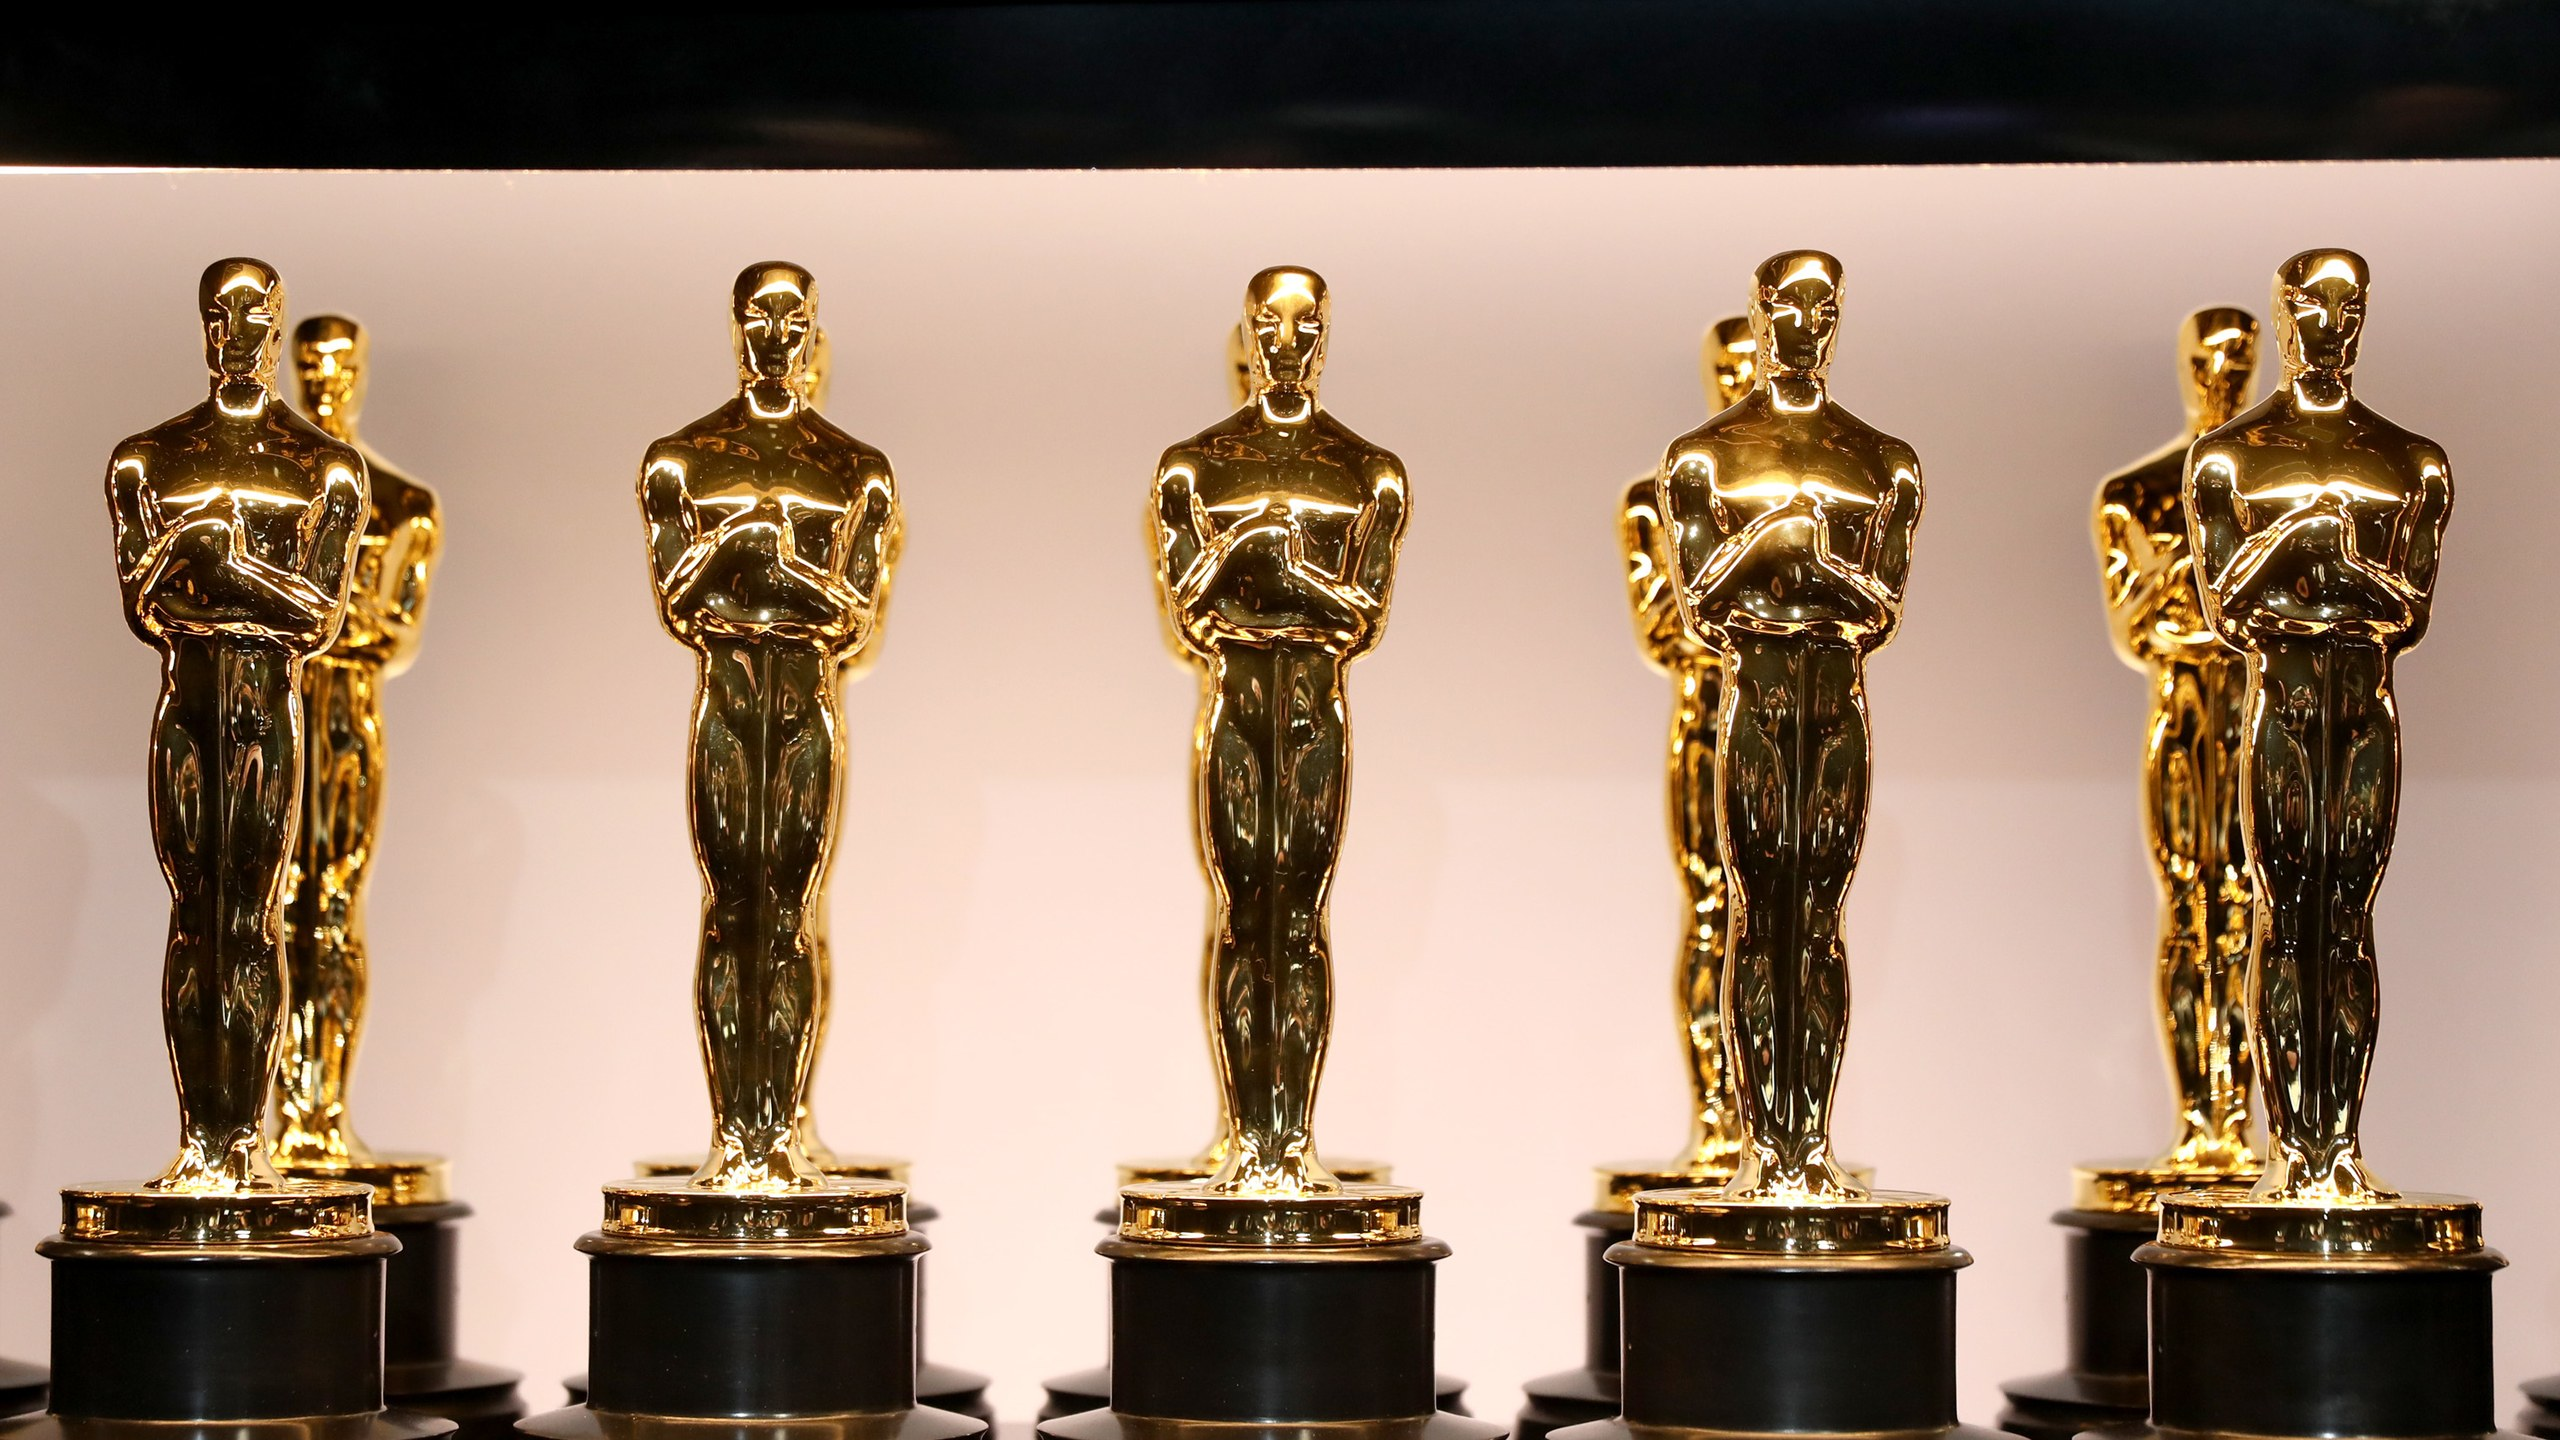 The 2018 Oscars Rewarded Alleged Abusers Despite MeToo and 2560x1440